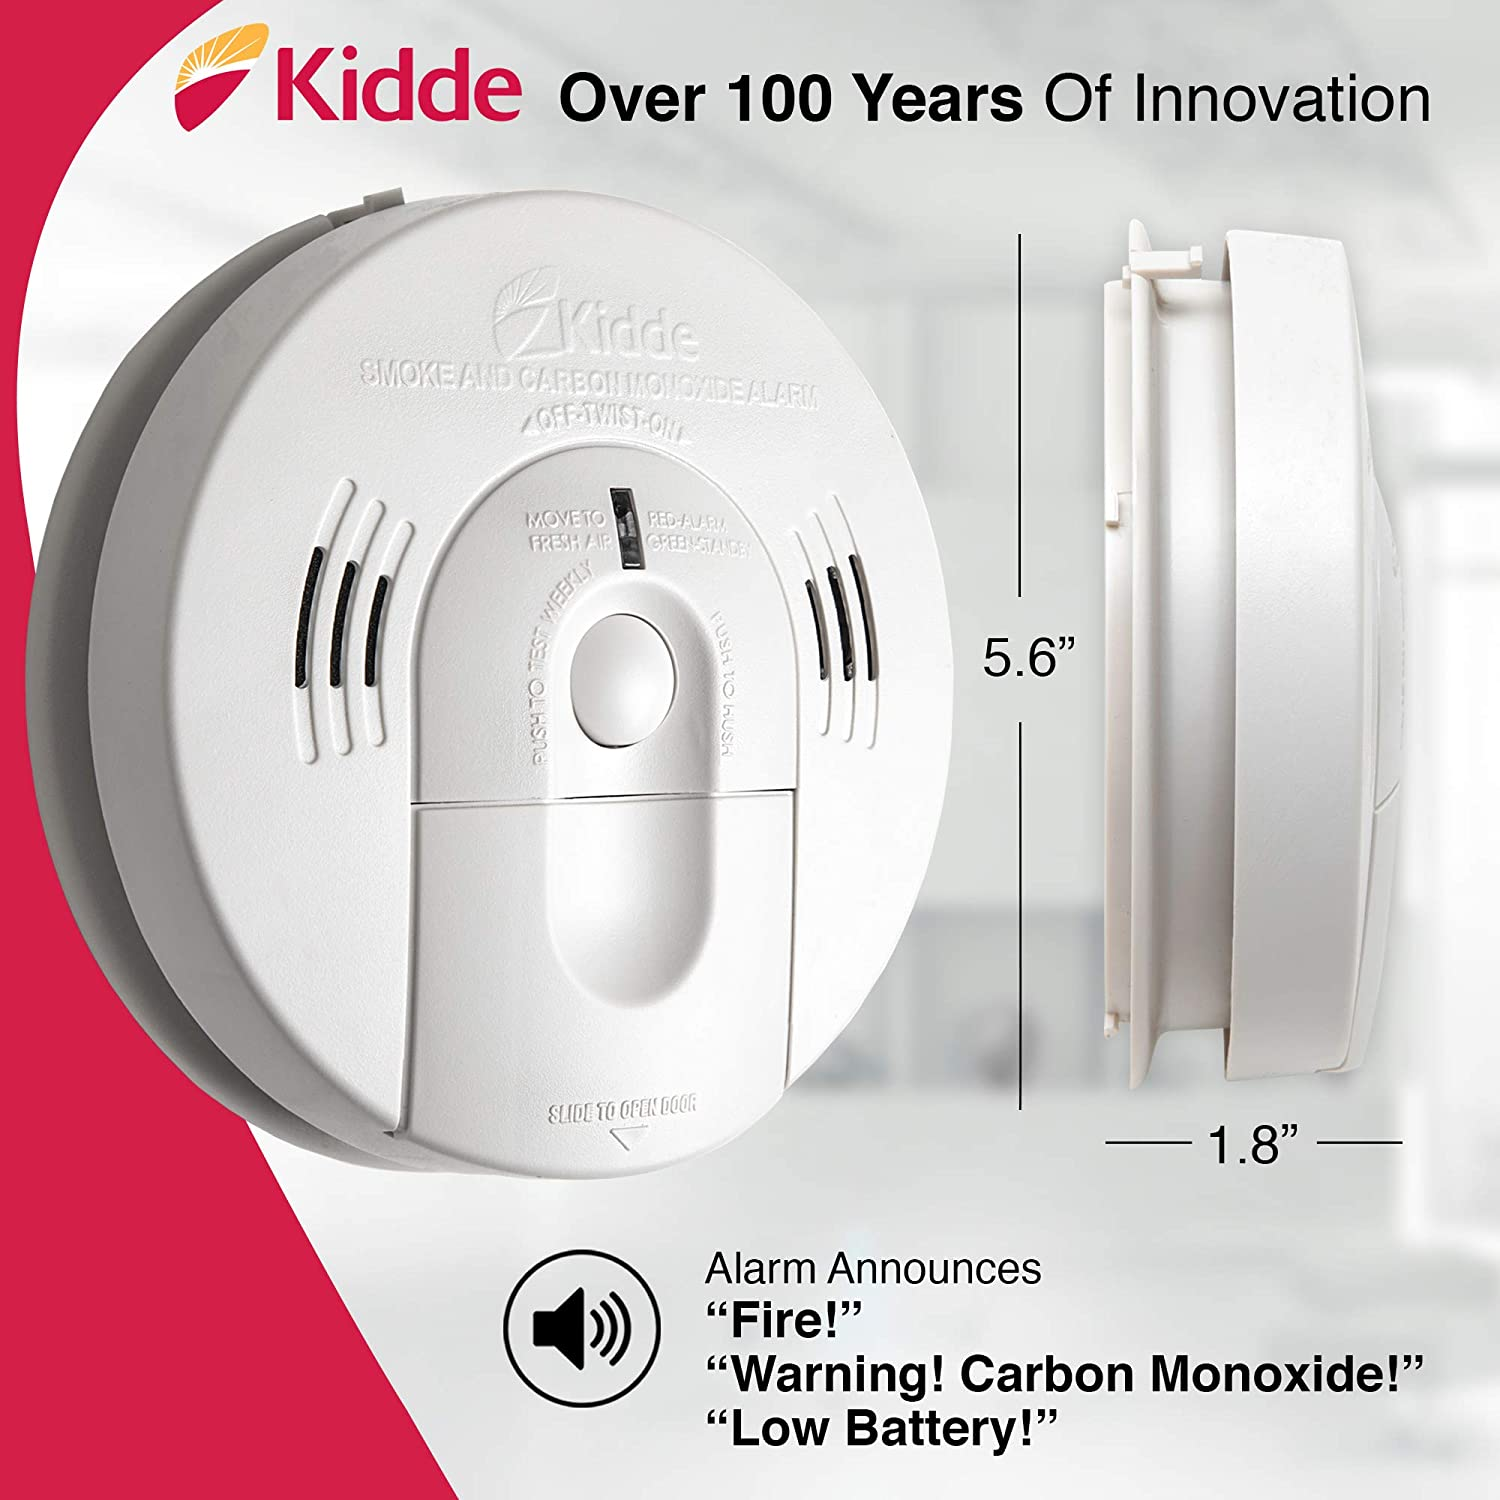 Kidde 21026043 Battery-Operated(Not Hardwired) Combination Smoke/Carbon Monoxide Alarm with Voice Warning KN-COSM-BA - -